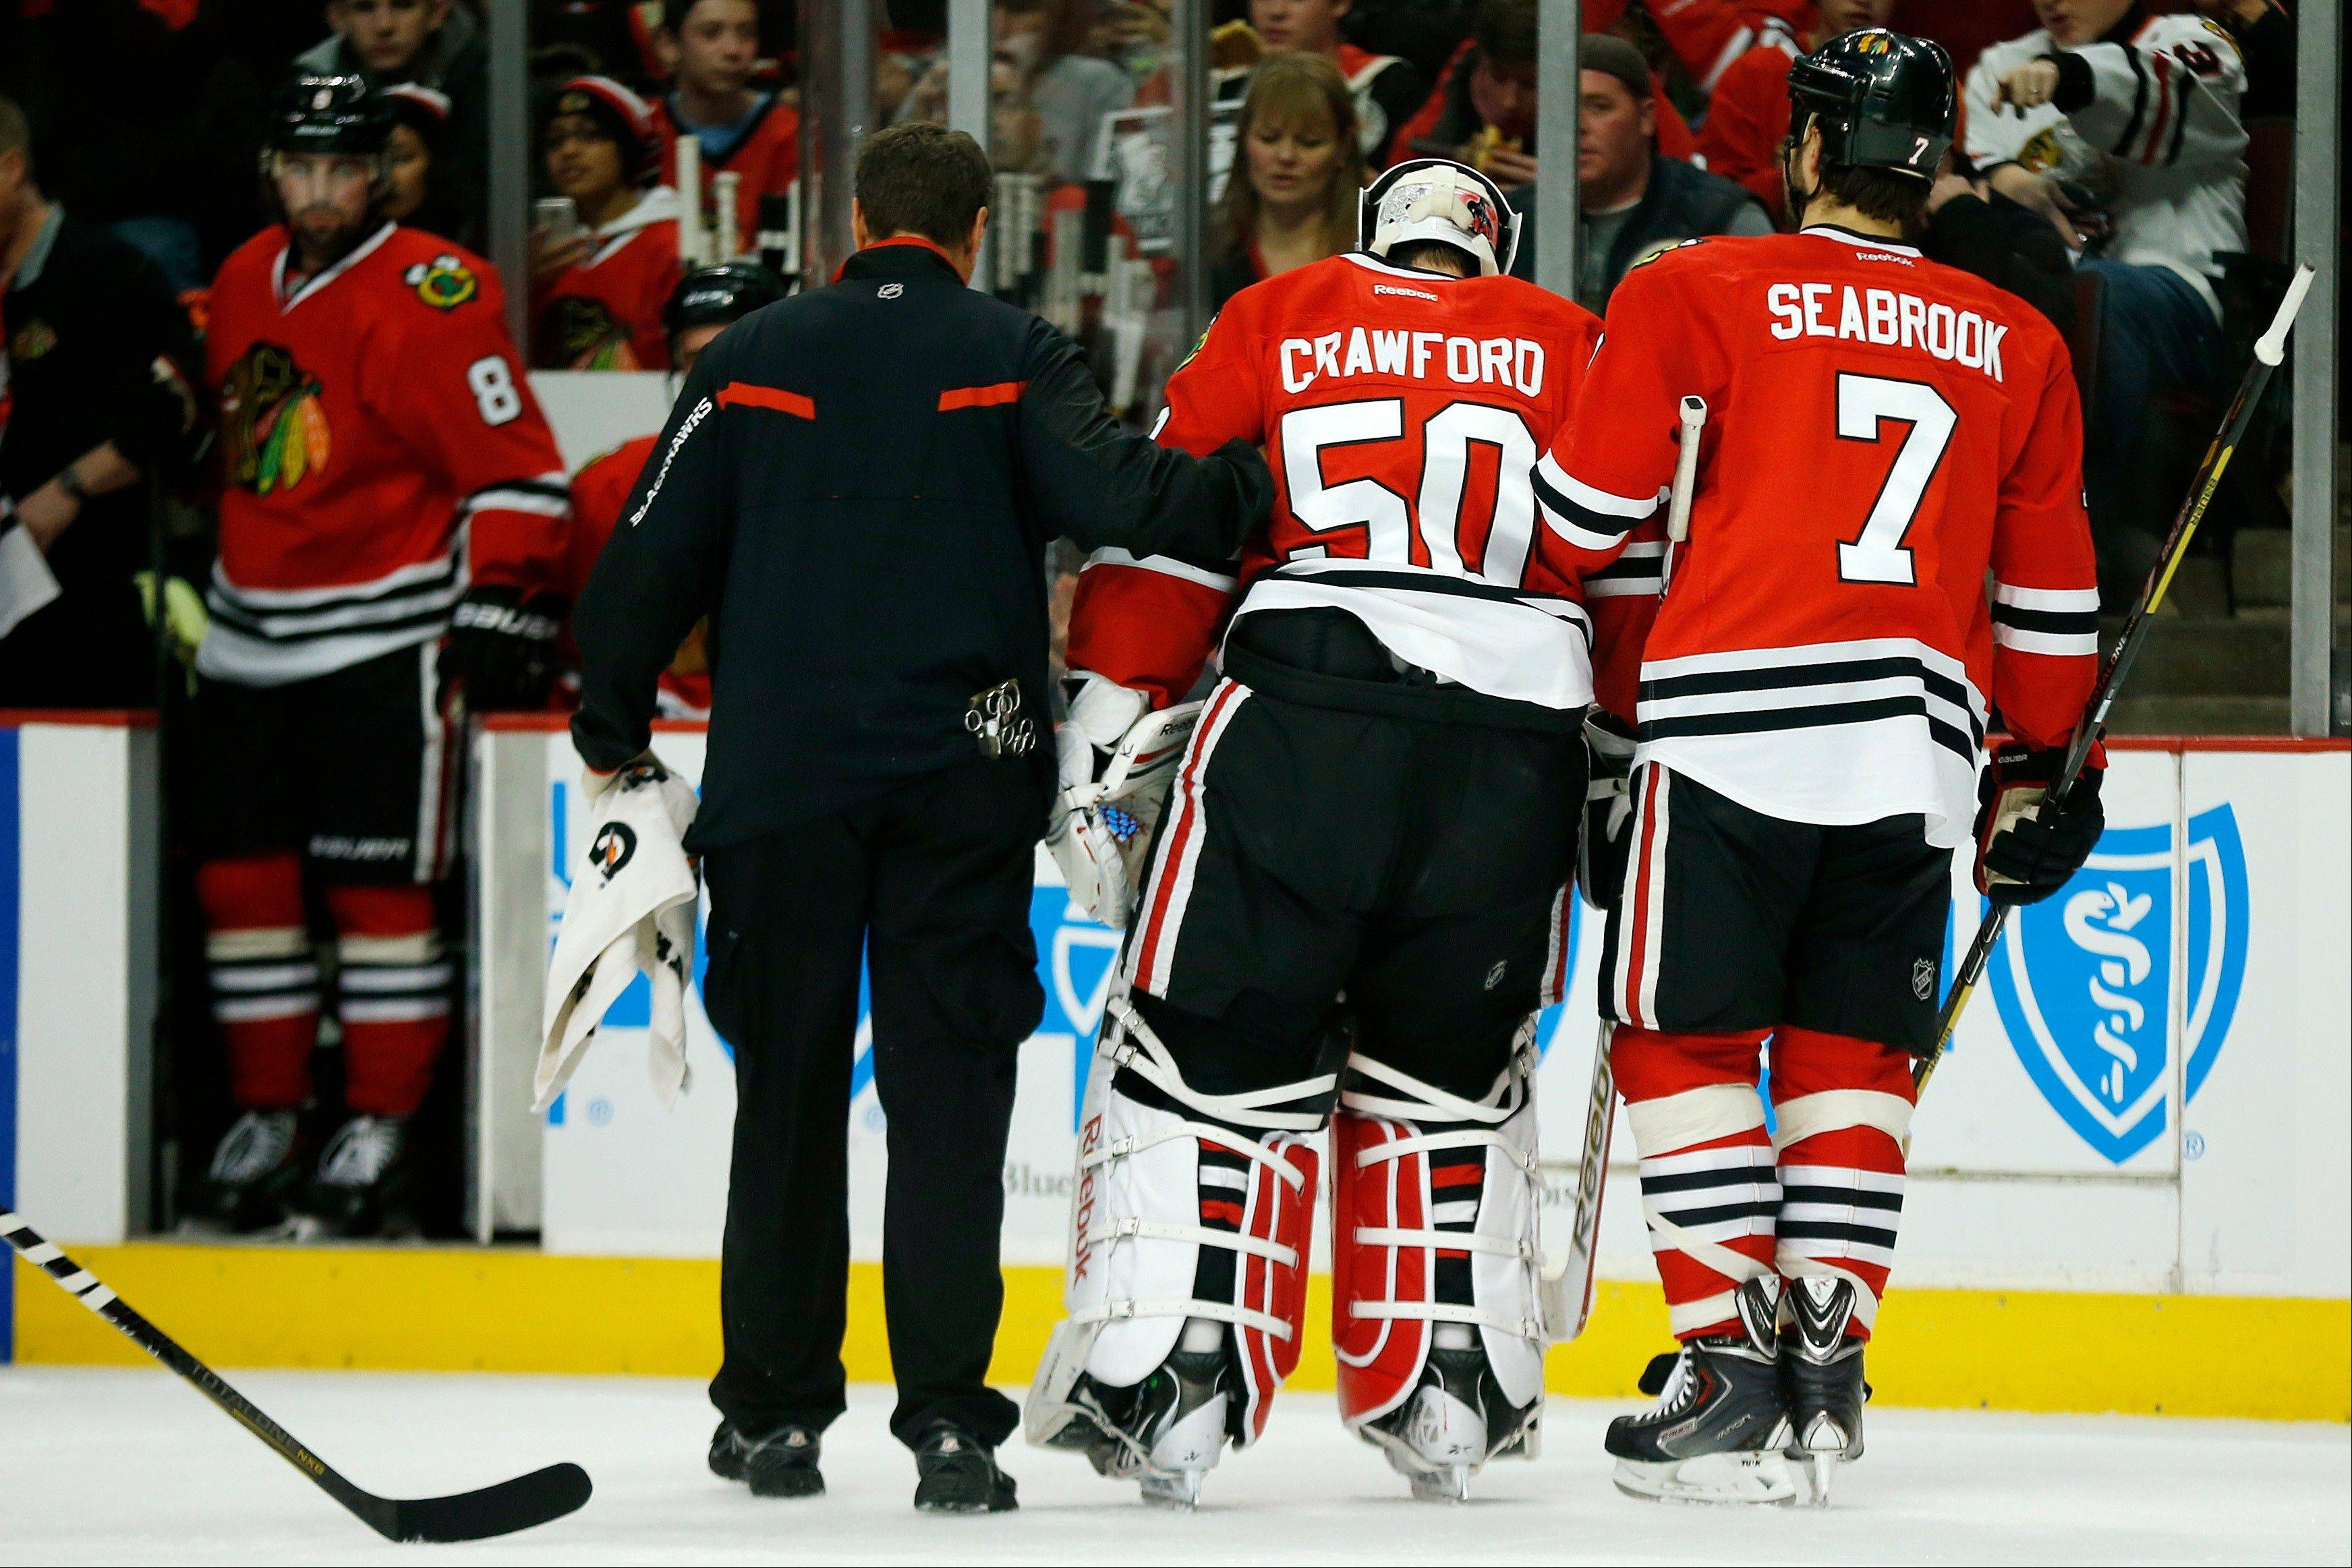 Blackhawks goalie Corey Crawford is helped off the ice after suffering an injury during the first period Sunday against the Florida Panthers in Chicago.